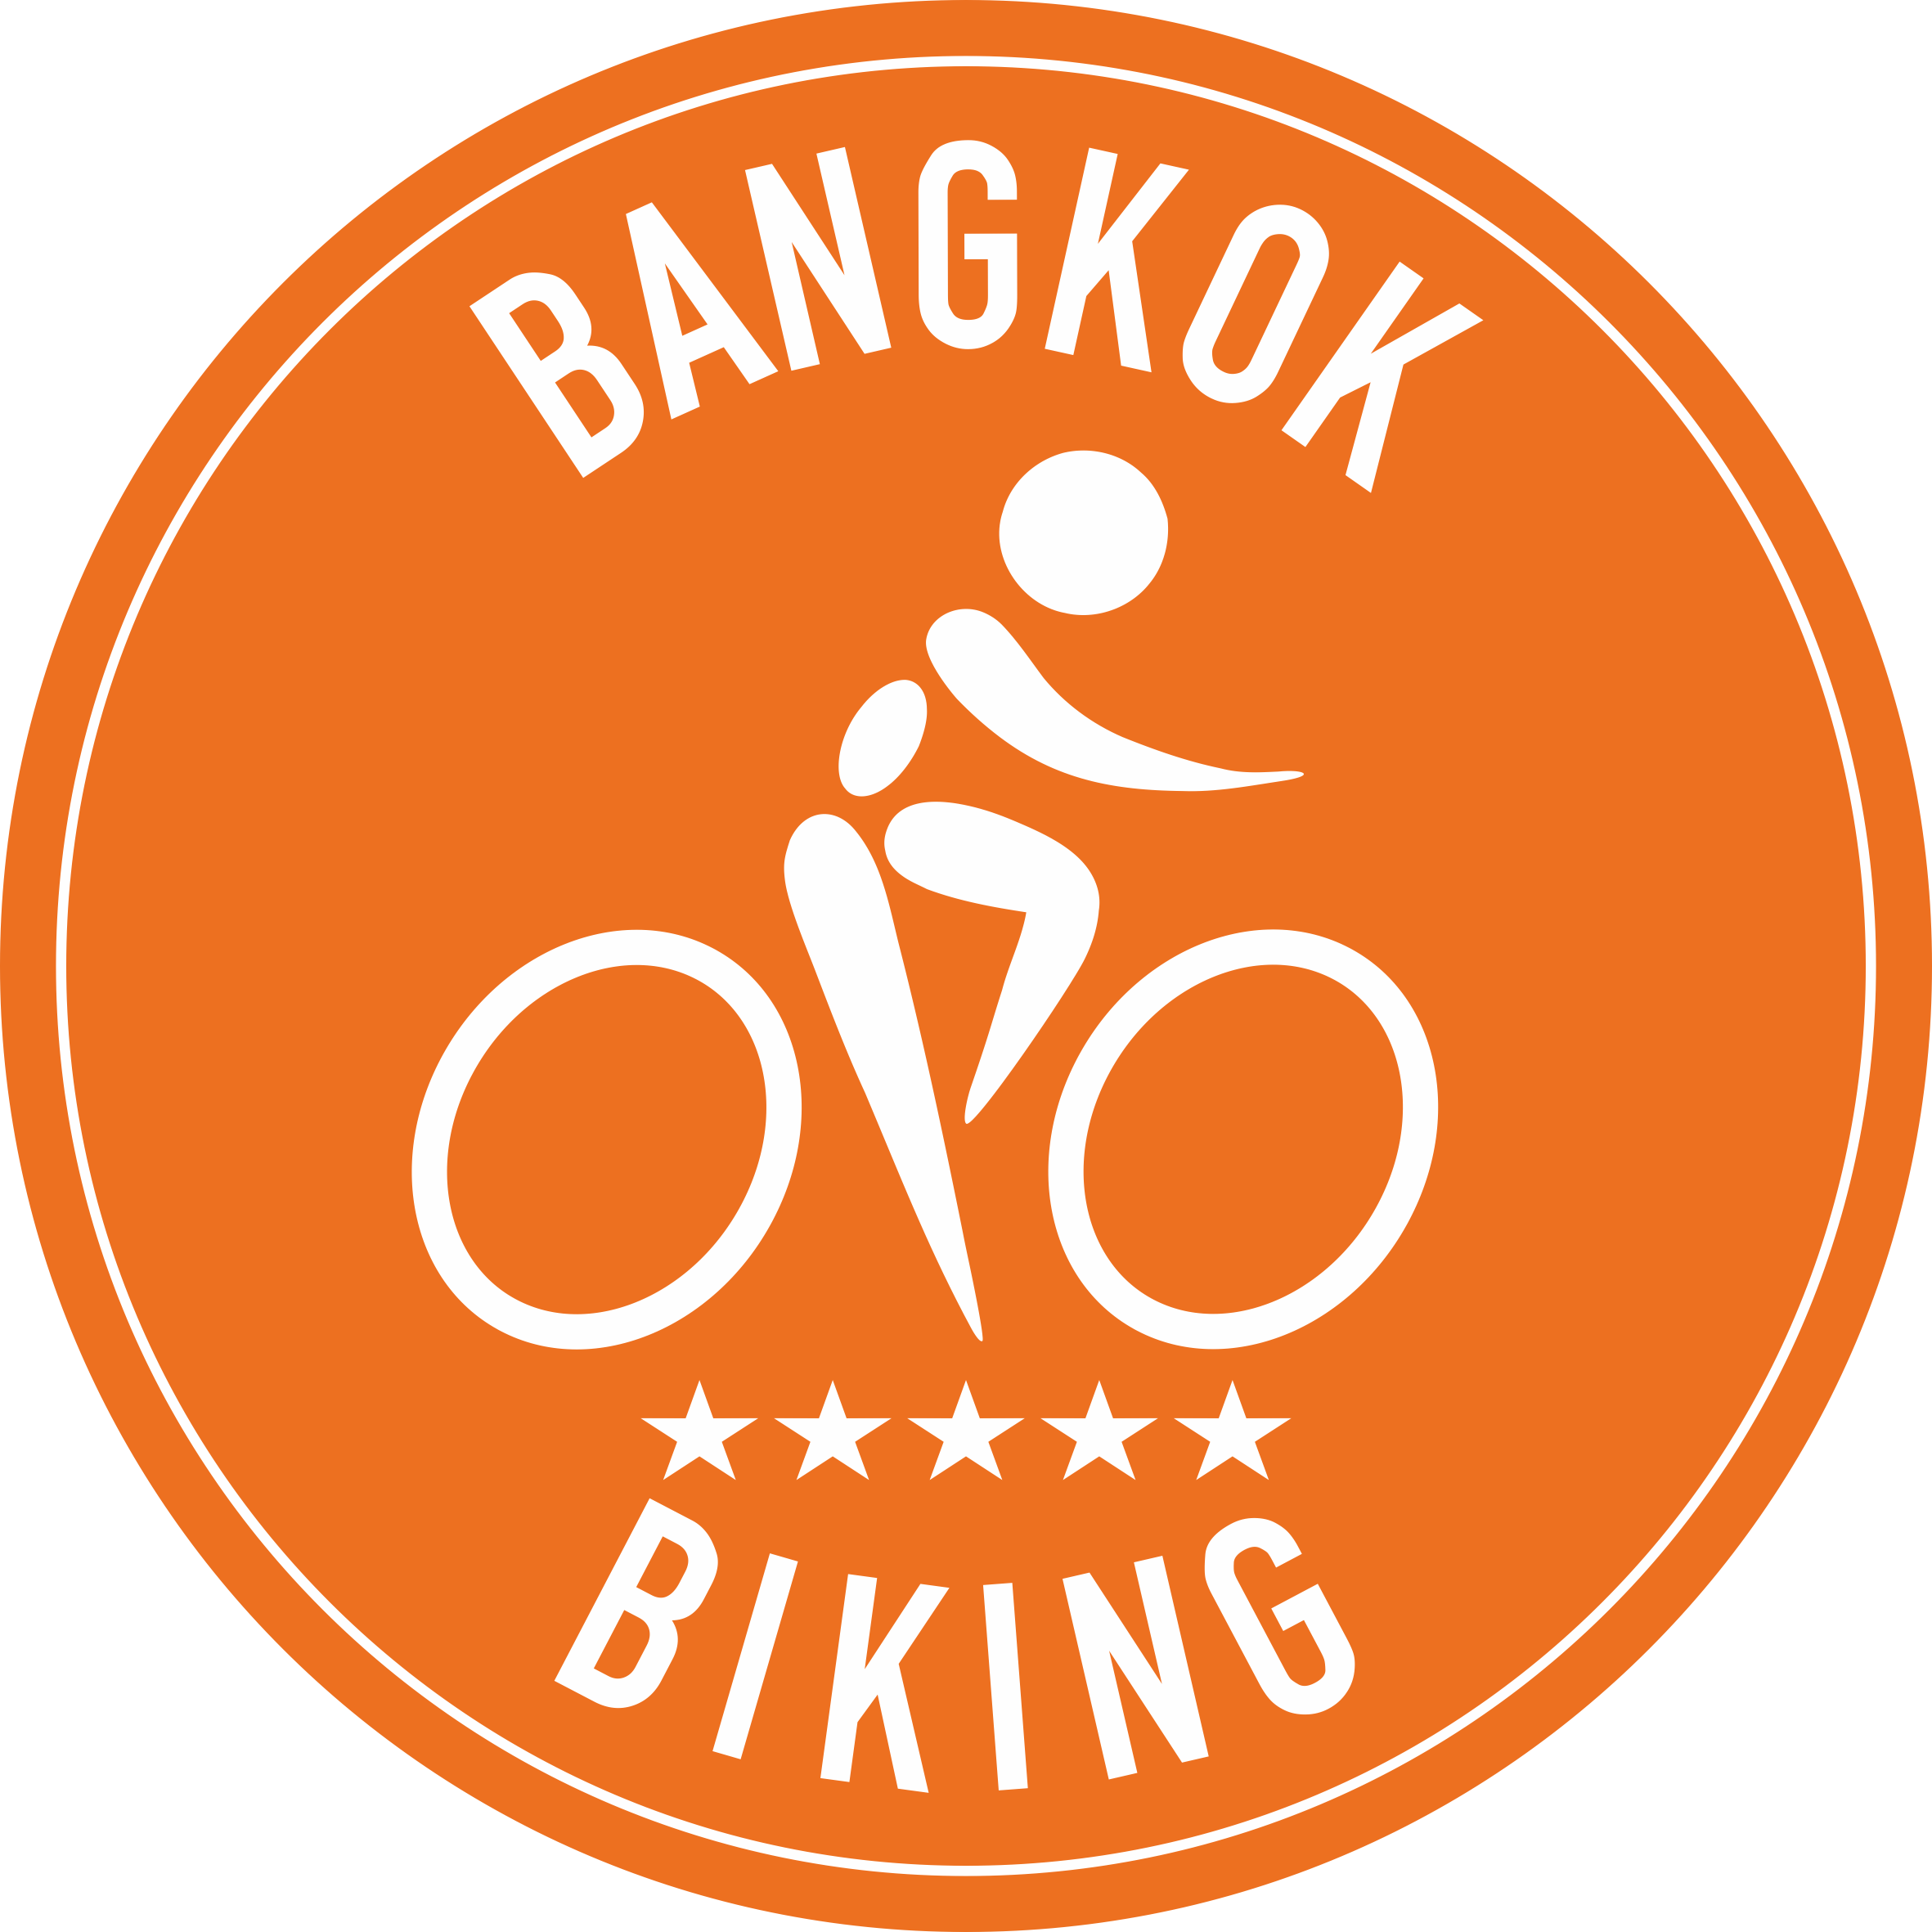 Recreational Bangkok Biking Co. Ltd.